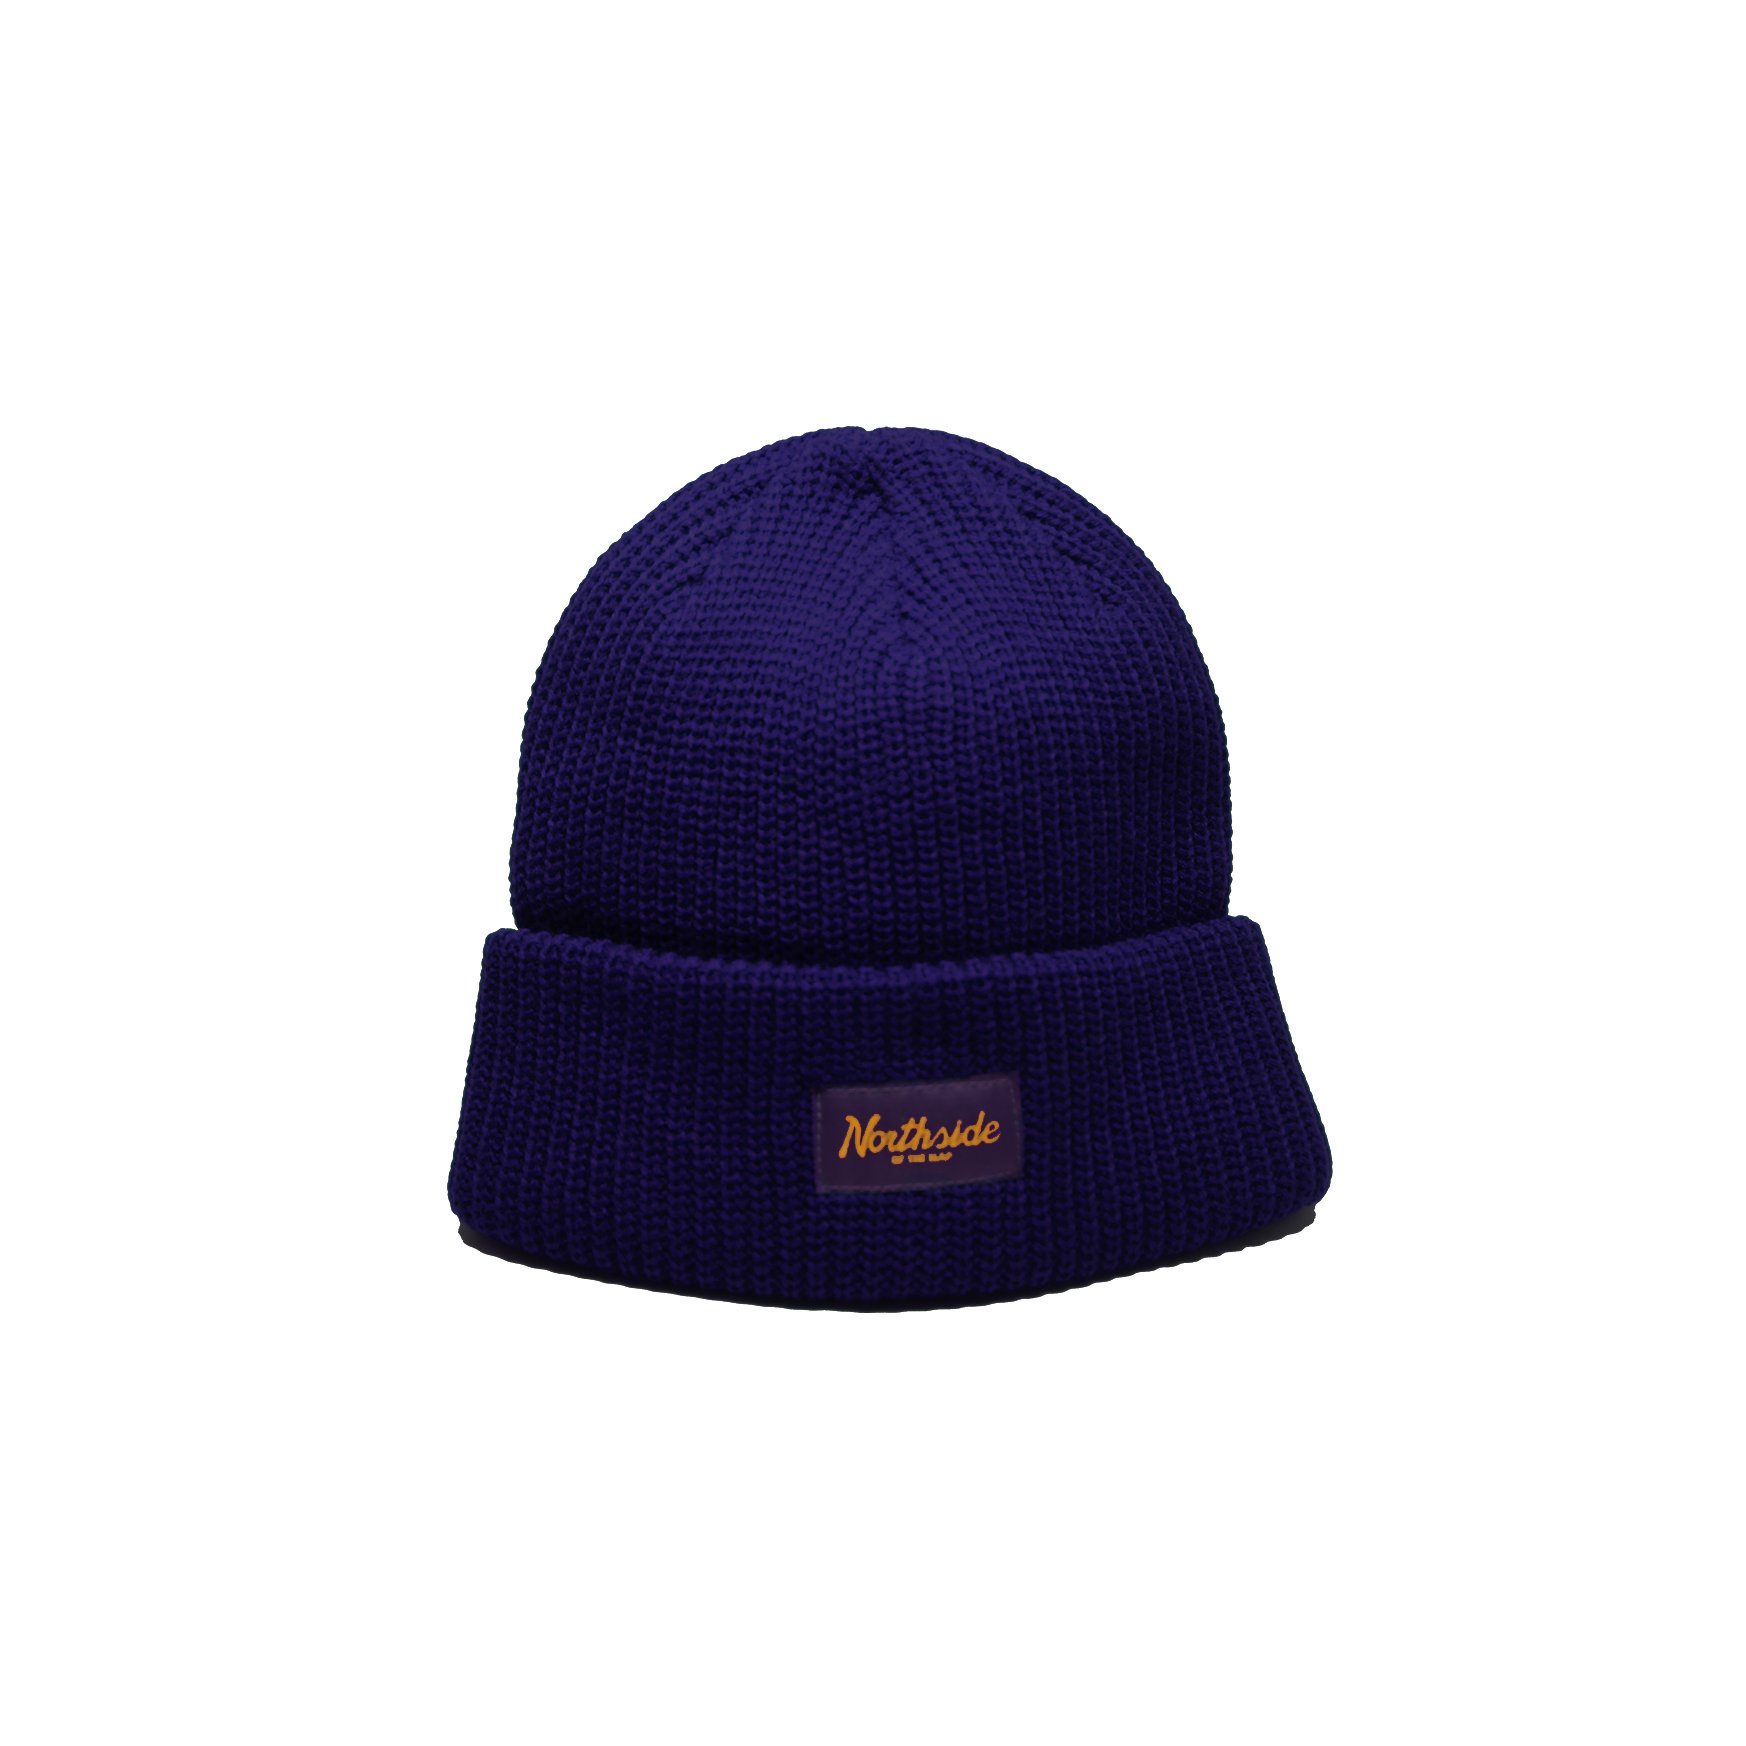 Stoney beanie Sapphire - Northside of the map